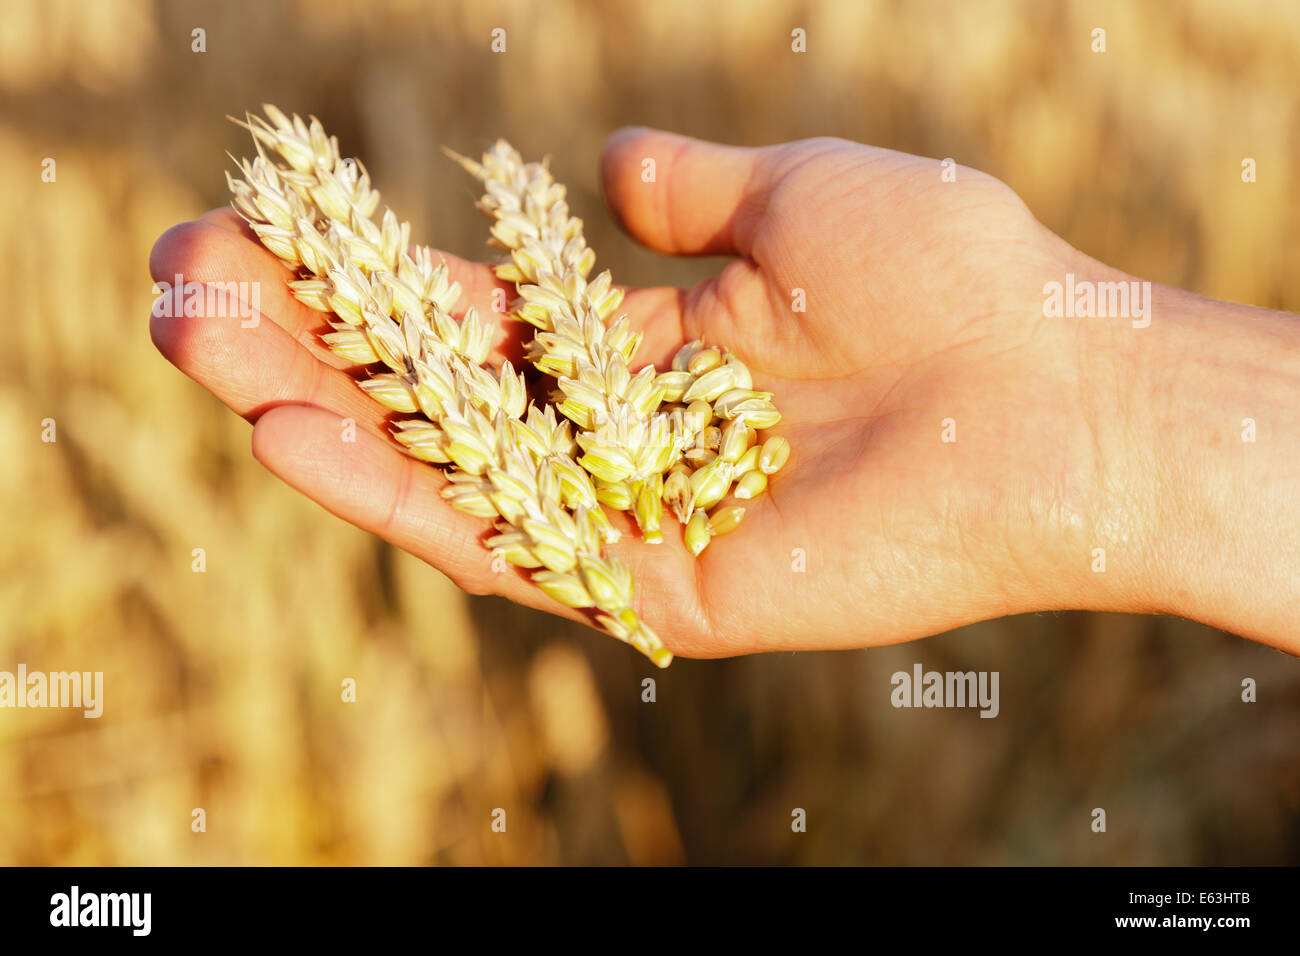 Ear of wheat and grains in a men's hand - Stock Image